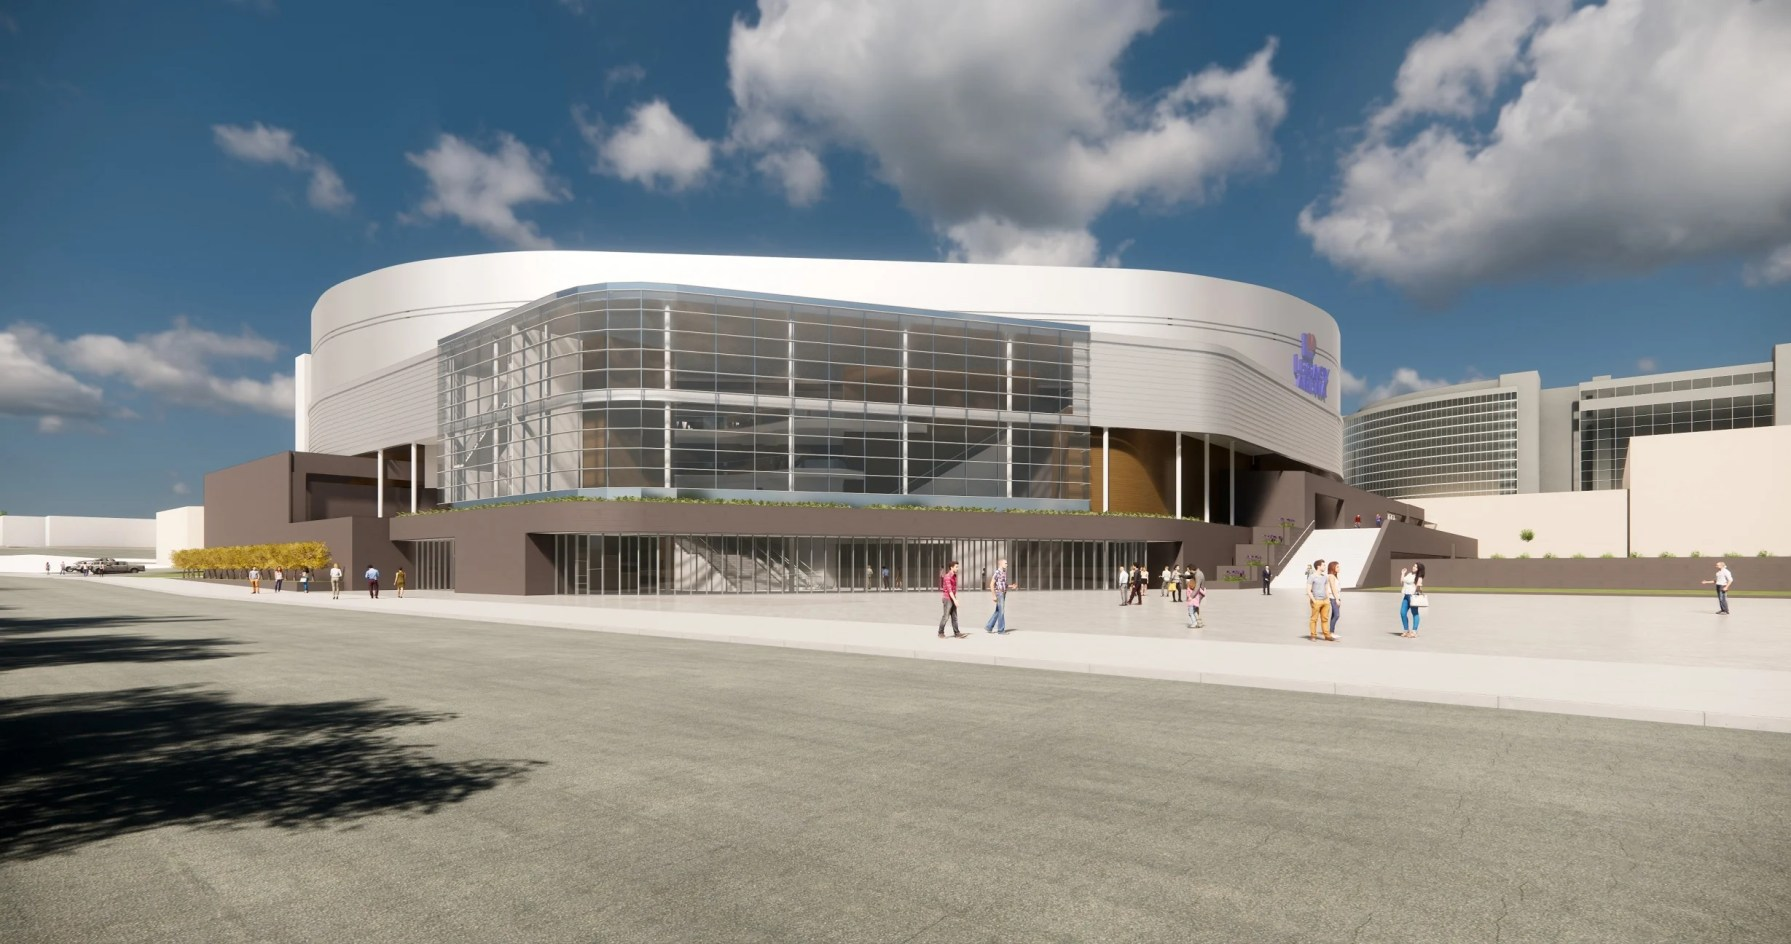 The BJCC's Legacy Arena will be transformed following a $123 million renovation and expansion. (BJCC)